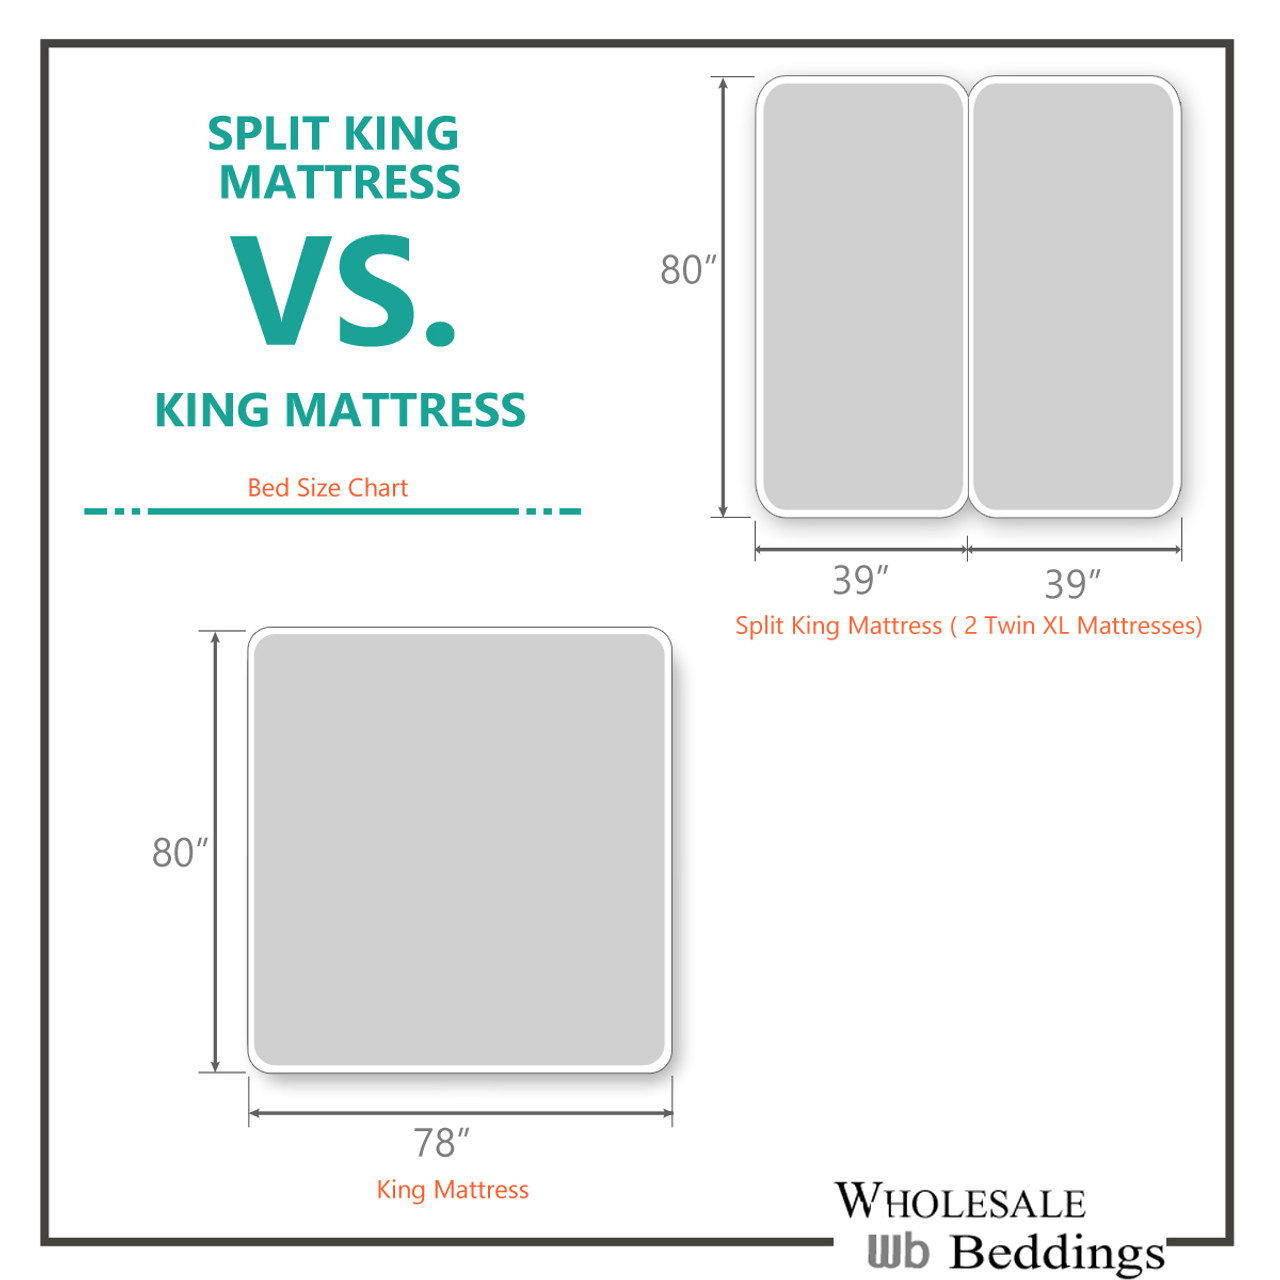 ... Split King Mattress VS King Mattress